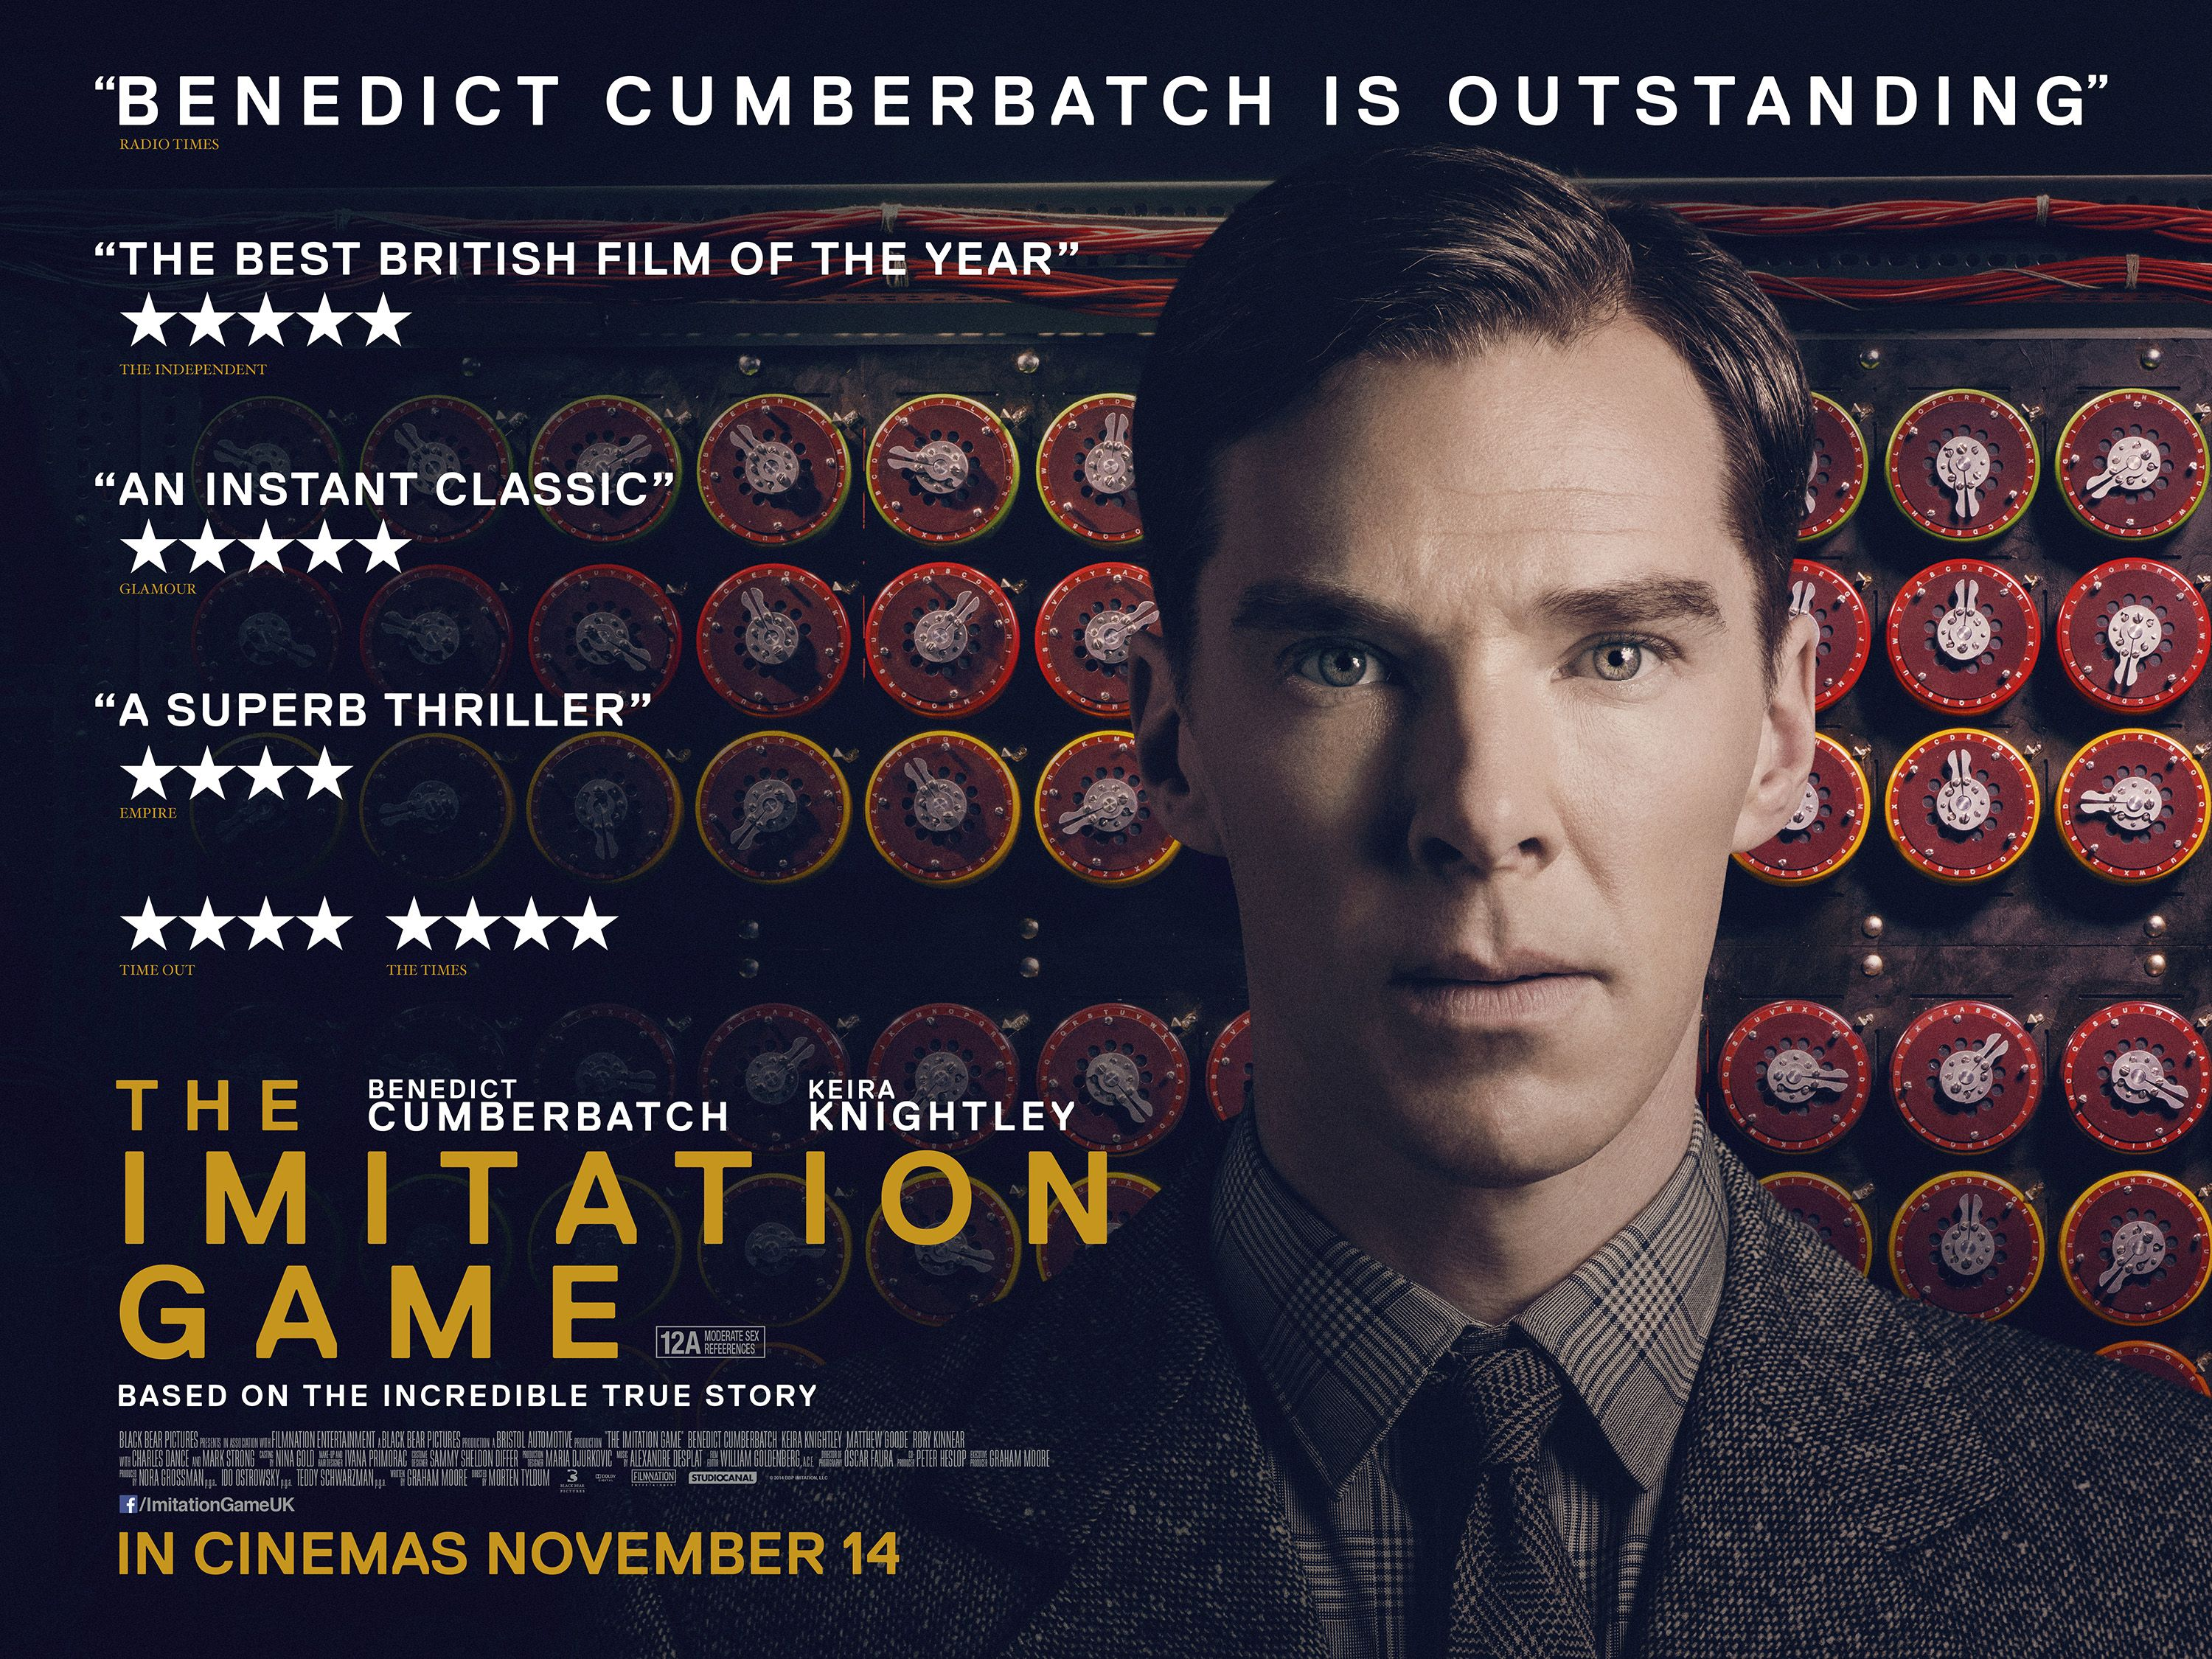 Alan Turing Libro The Imitation Game My Top Movies Pinterest Películas